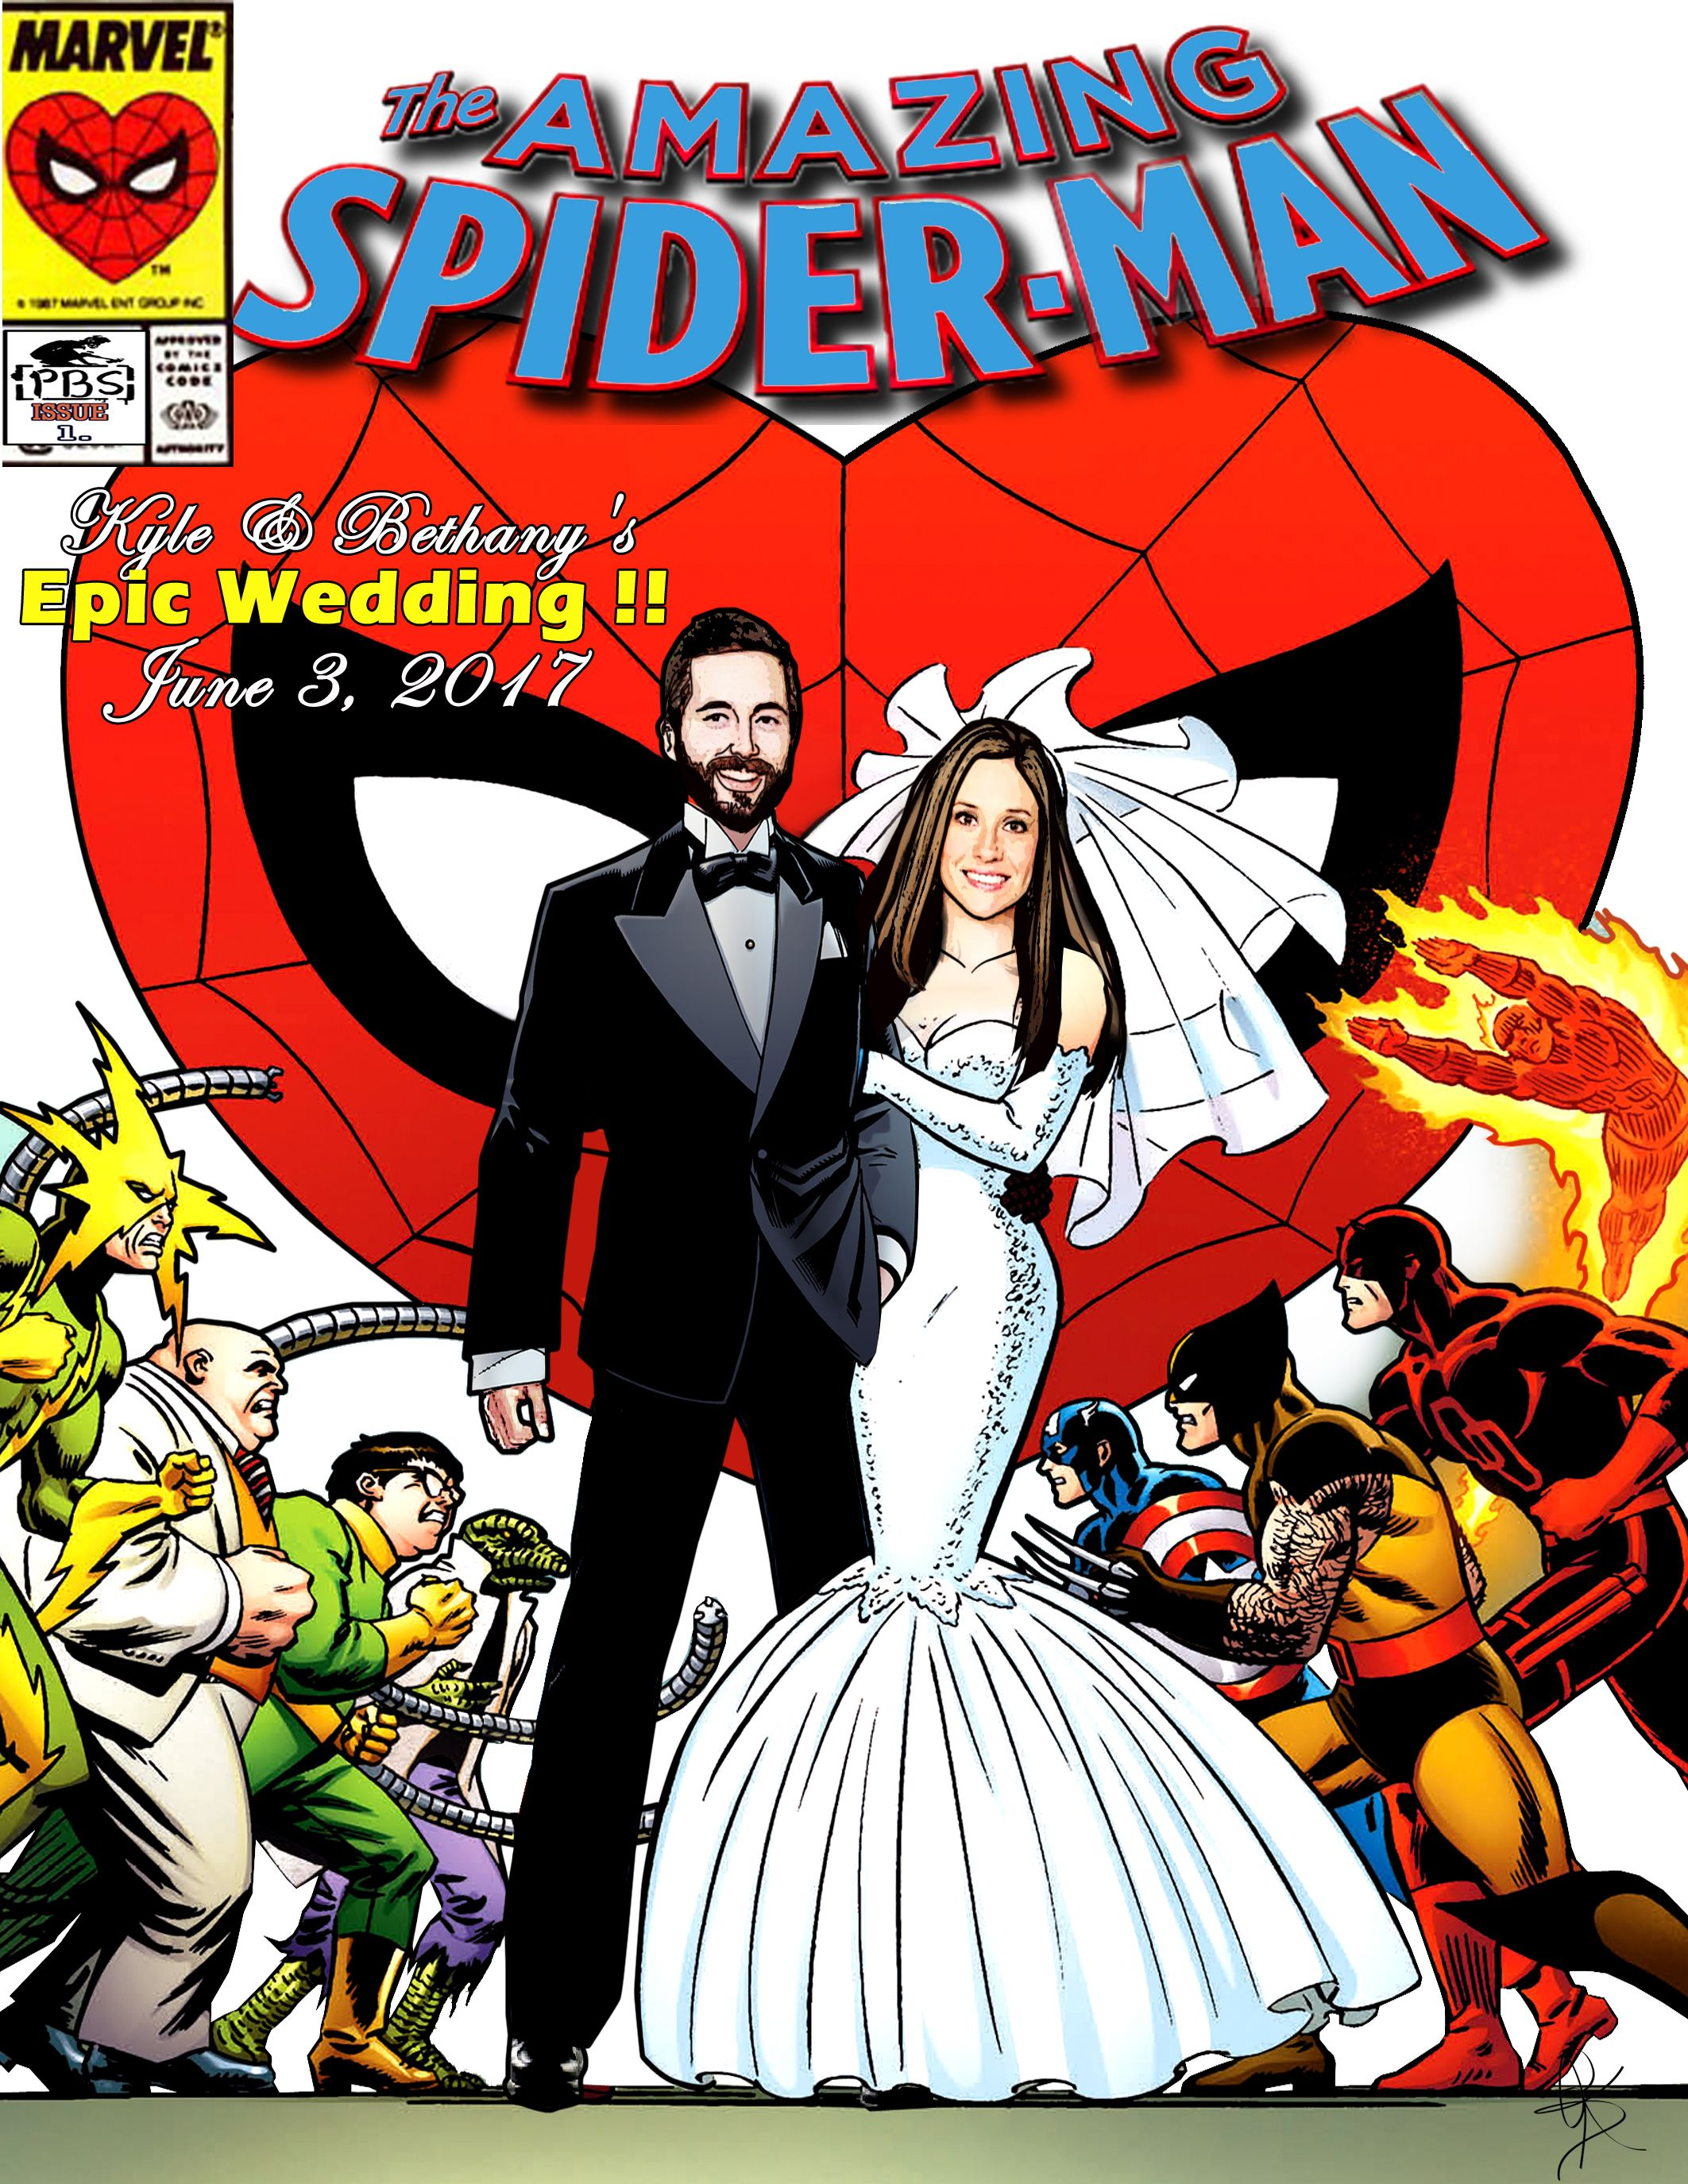 Personalized comic book cover | Wedding Ideas | Pinterest